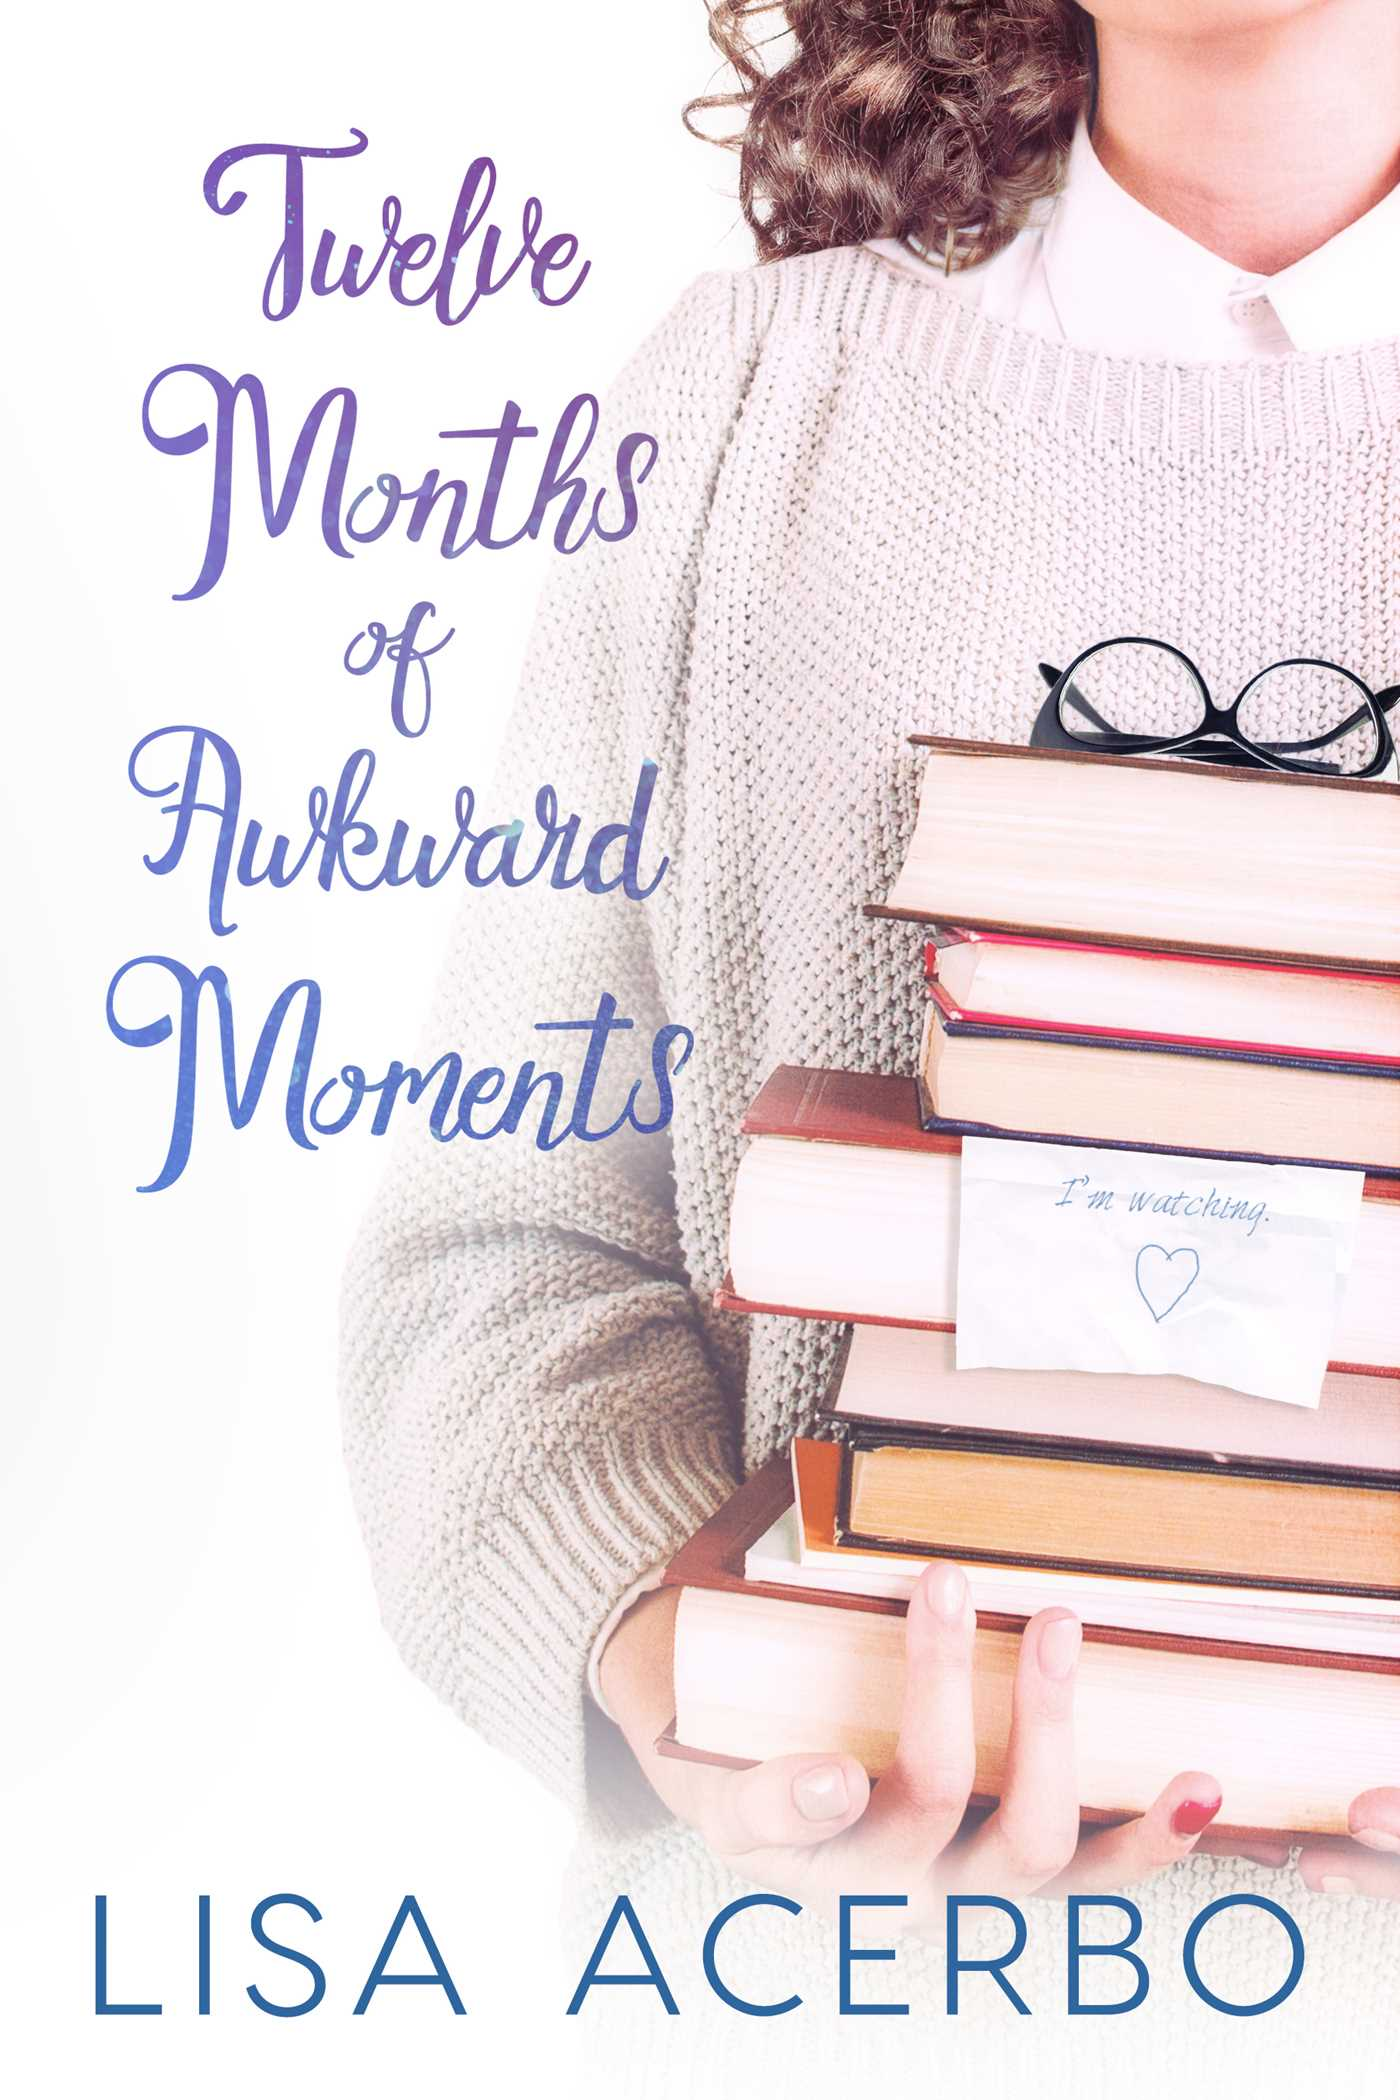 Twelve months of awkward moments 9781682992937 hr